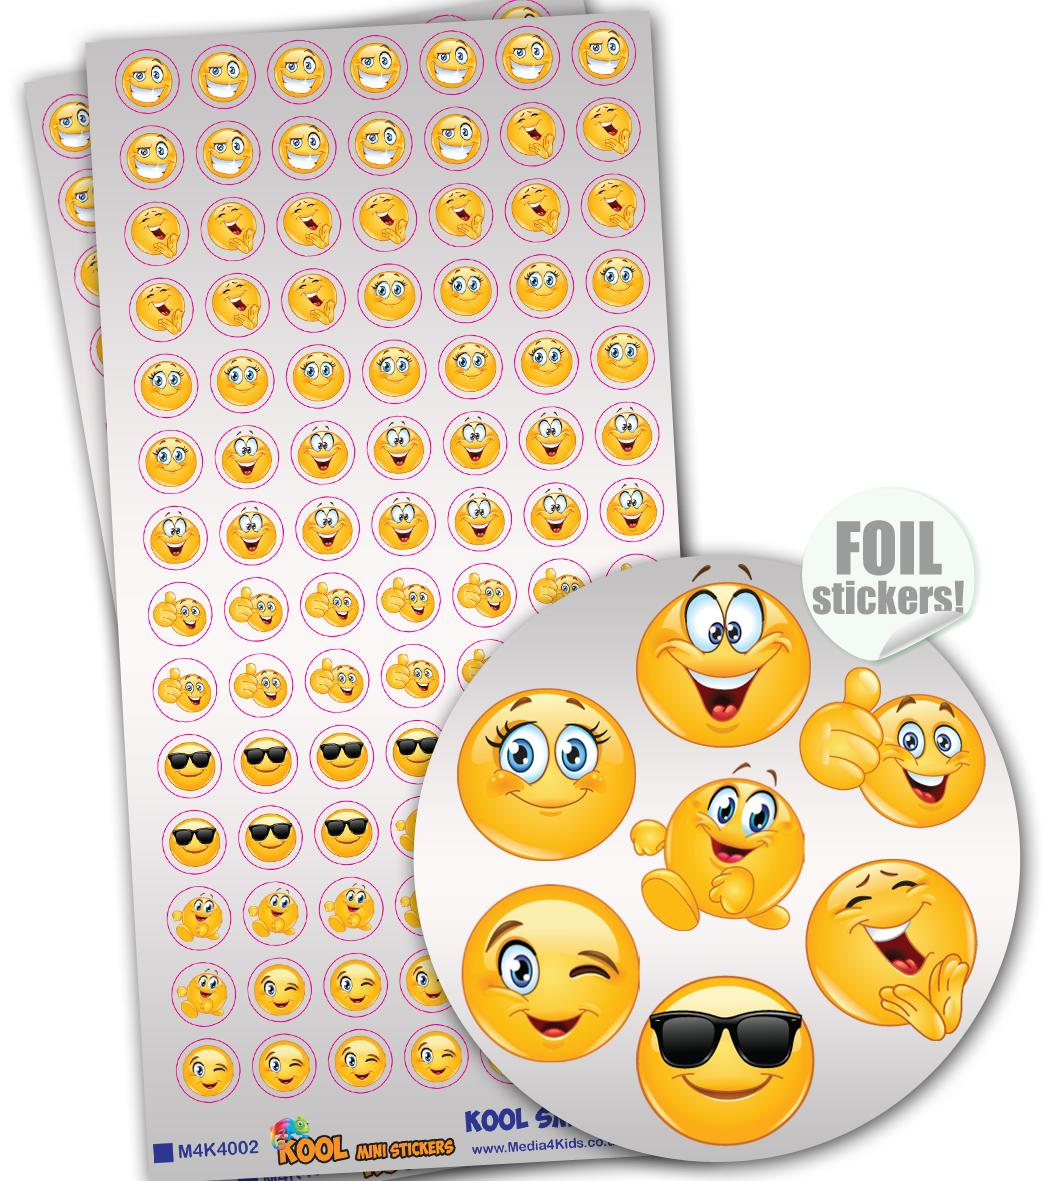 Stickers Petits | Kool Smiles Emoji Autocollants Brilliante Mini